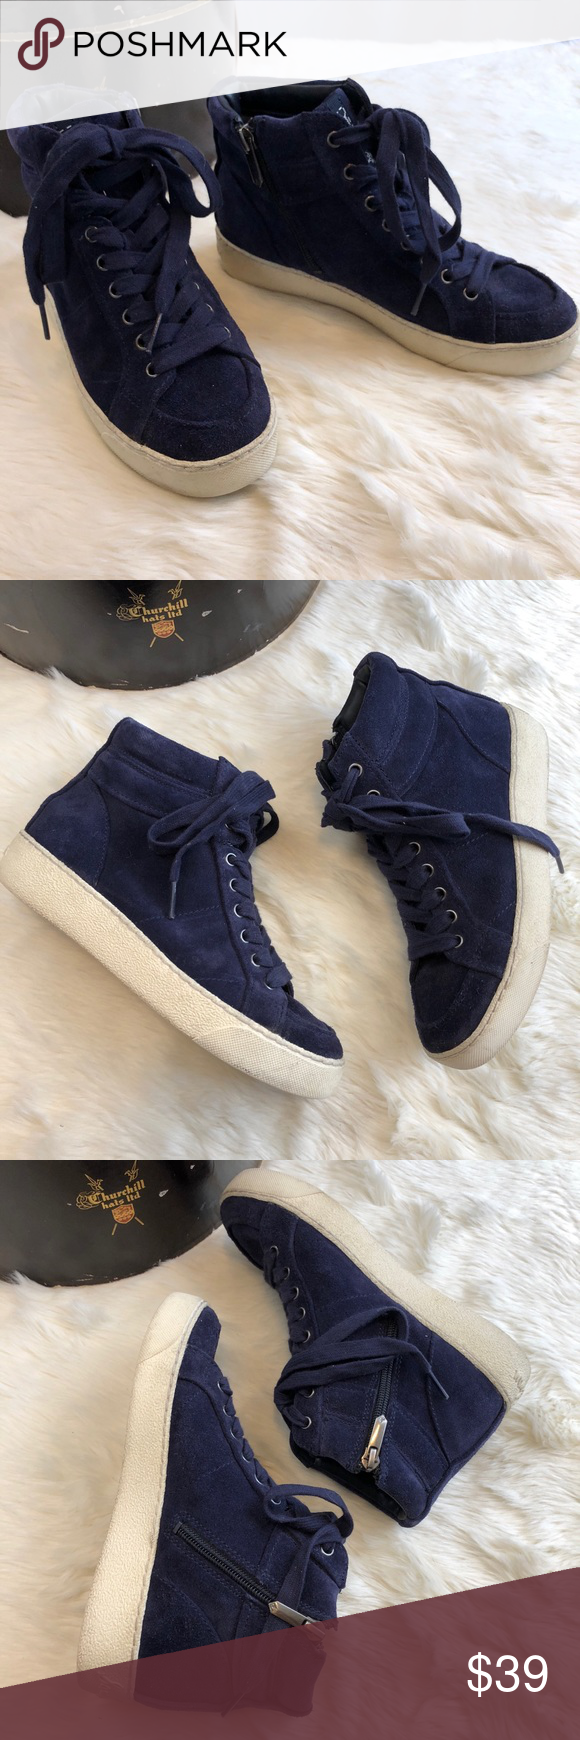 3841d6bcbaa818 SAM EDELMAN Britt Blue Suede High Top Sneakers Perfect fall winter sneaker  that s fashionable and warm. US 5 Previously worn with signs of wear on  soles.